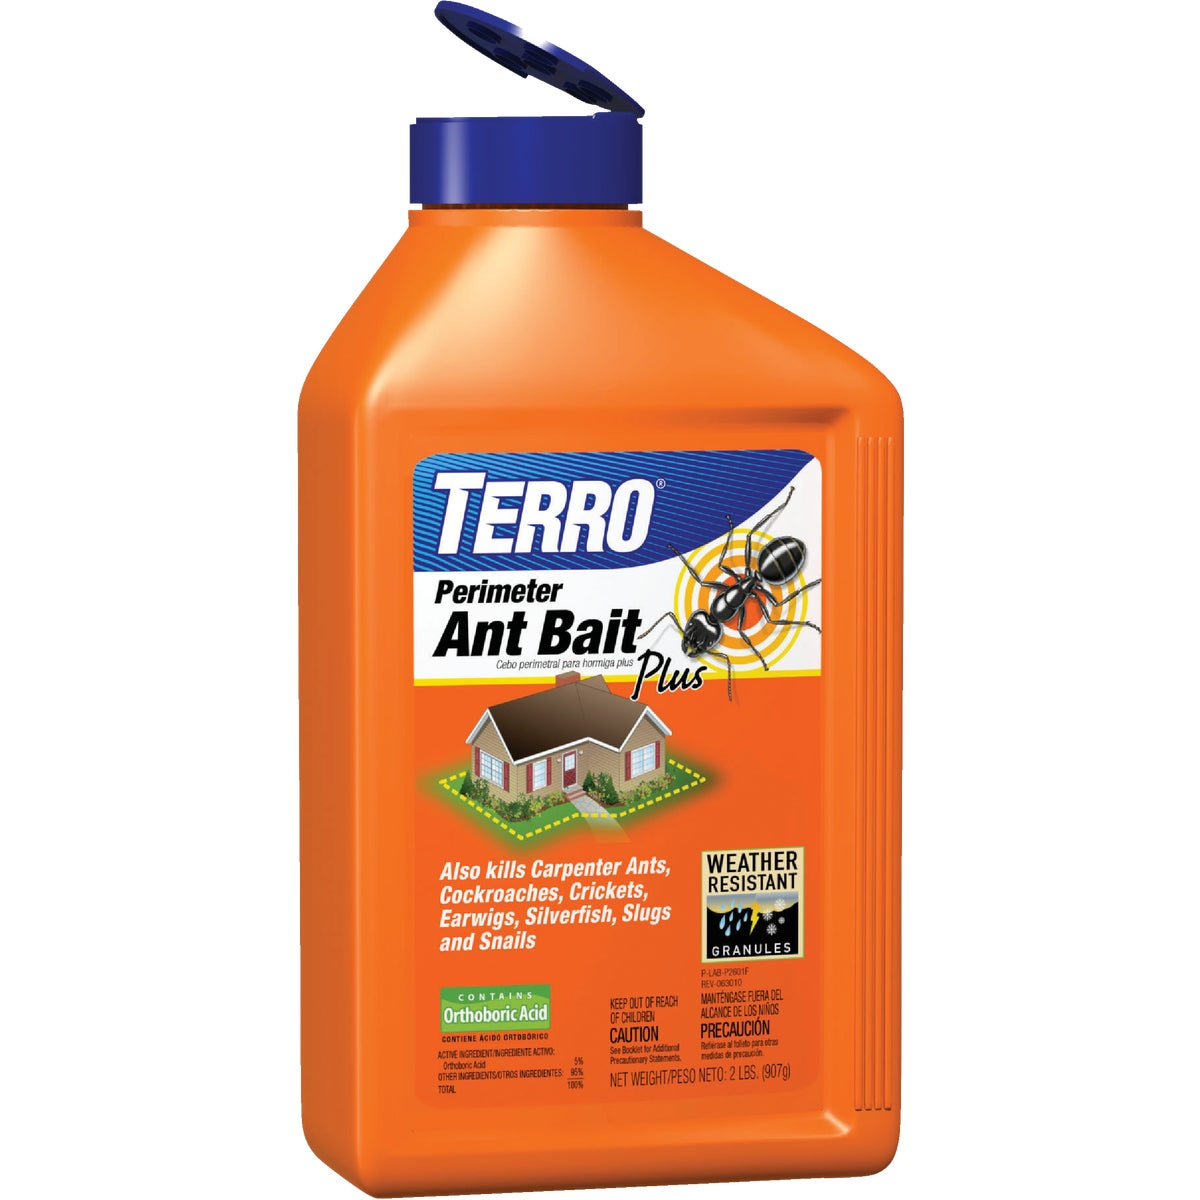 TERRO ANT BAIT PLUS 2LB - T2600 by Woodstream Corp